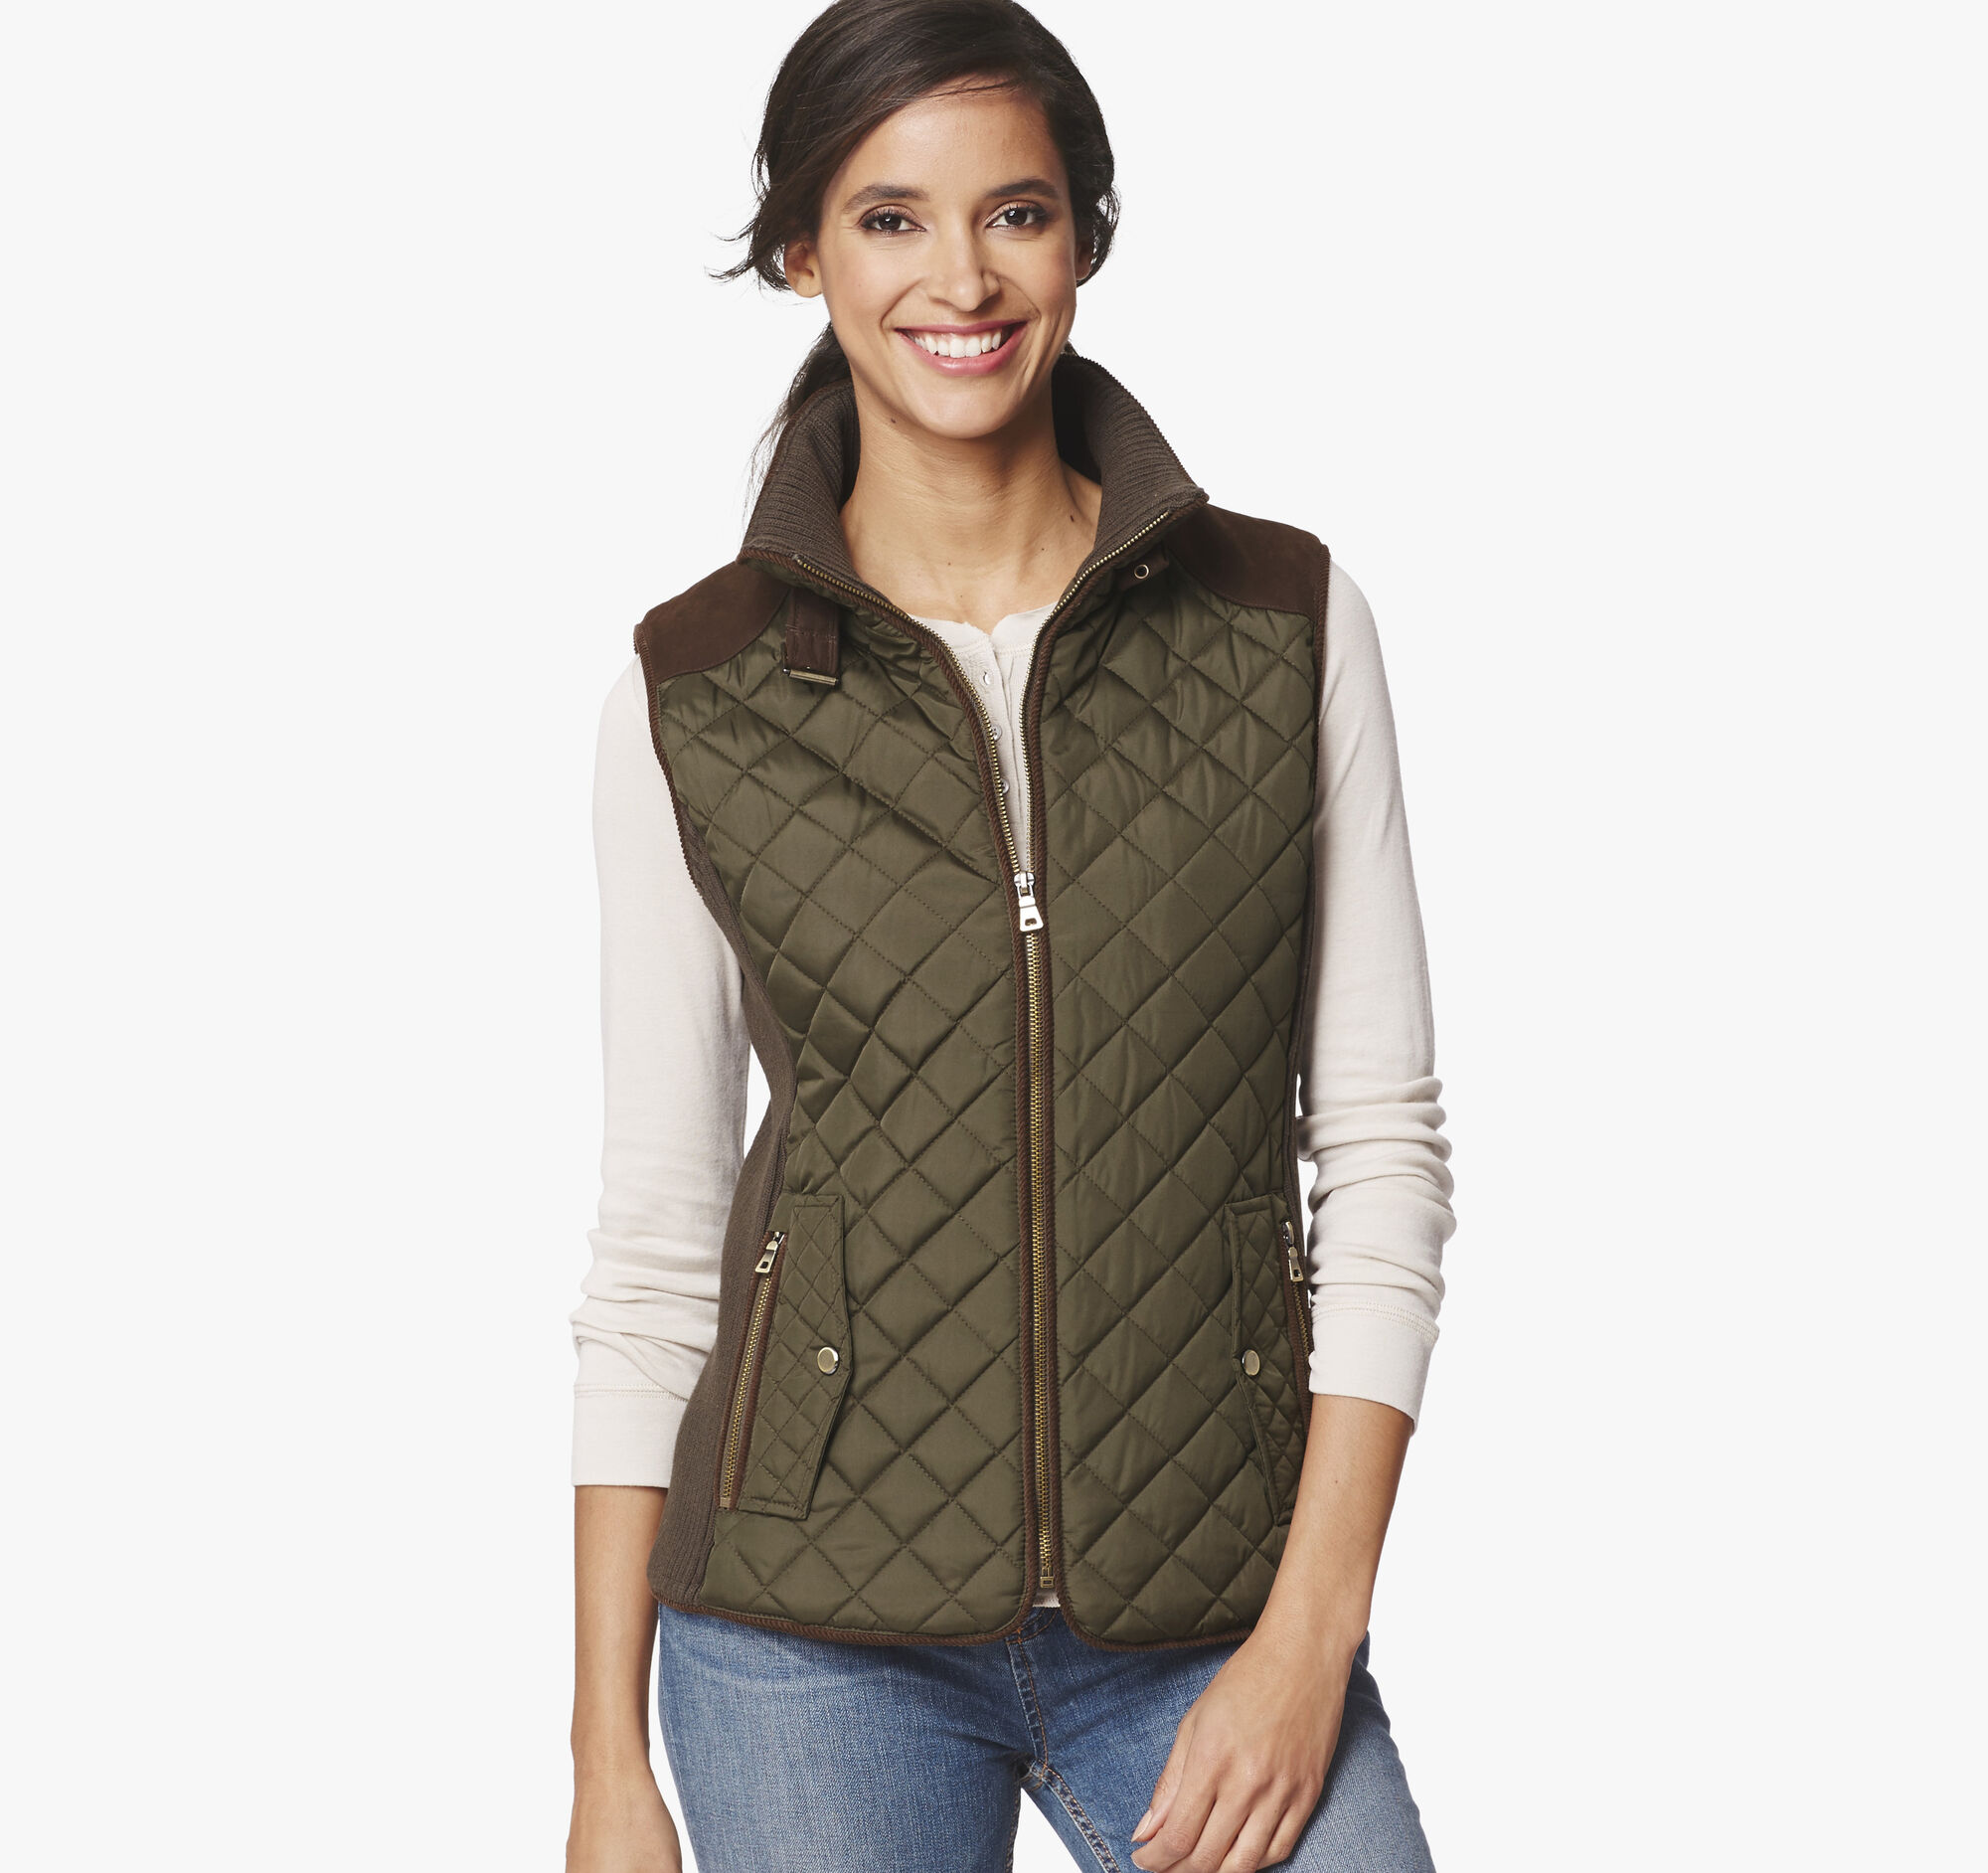 Find the best selection of cheap quilted vest in bulk here at mainflyyou.tk Including plus size gothic vest and characters sleeveless vest at wholesale prices from quilted vest manufacturers. Source discount and high quality products in hundreds of categories wholesale direct from China.